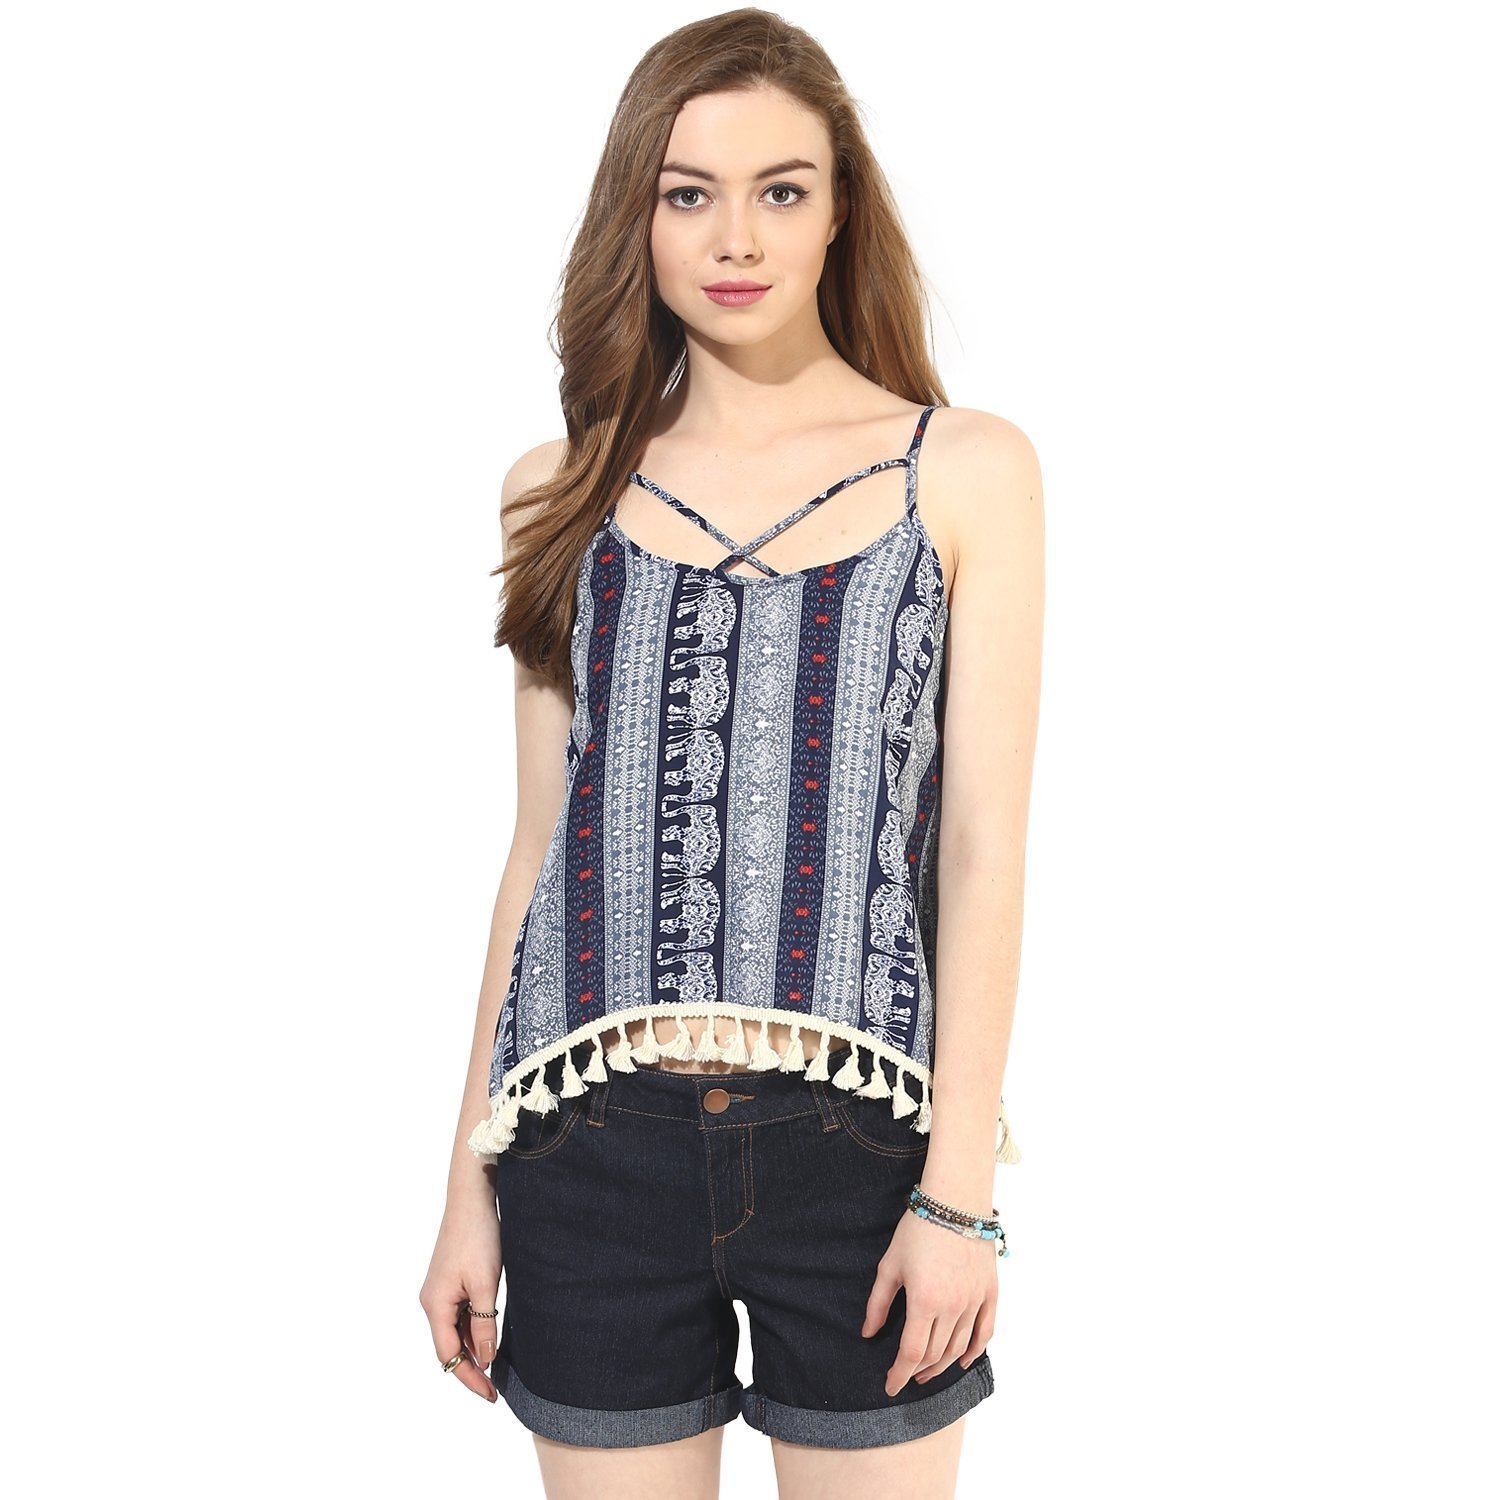 Elephant Boho Print Boho Swing Top with Lace Hem